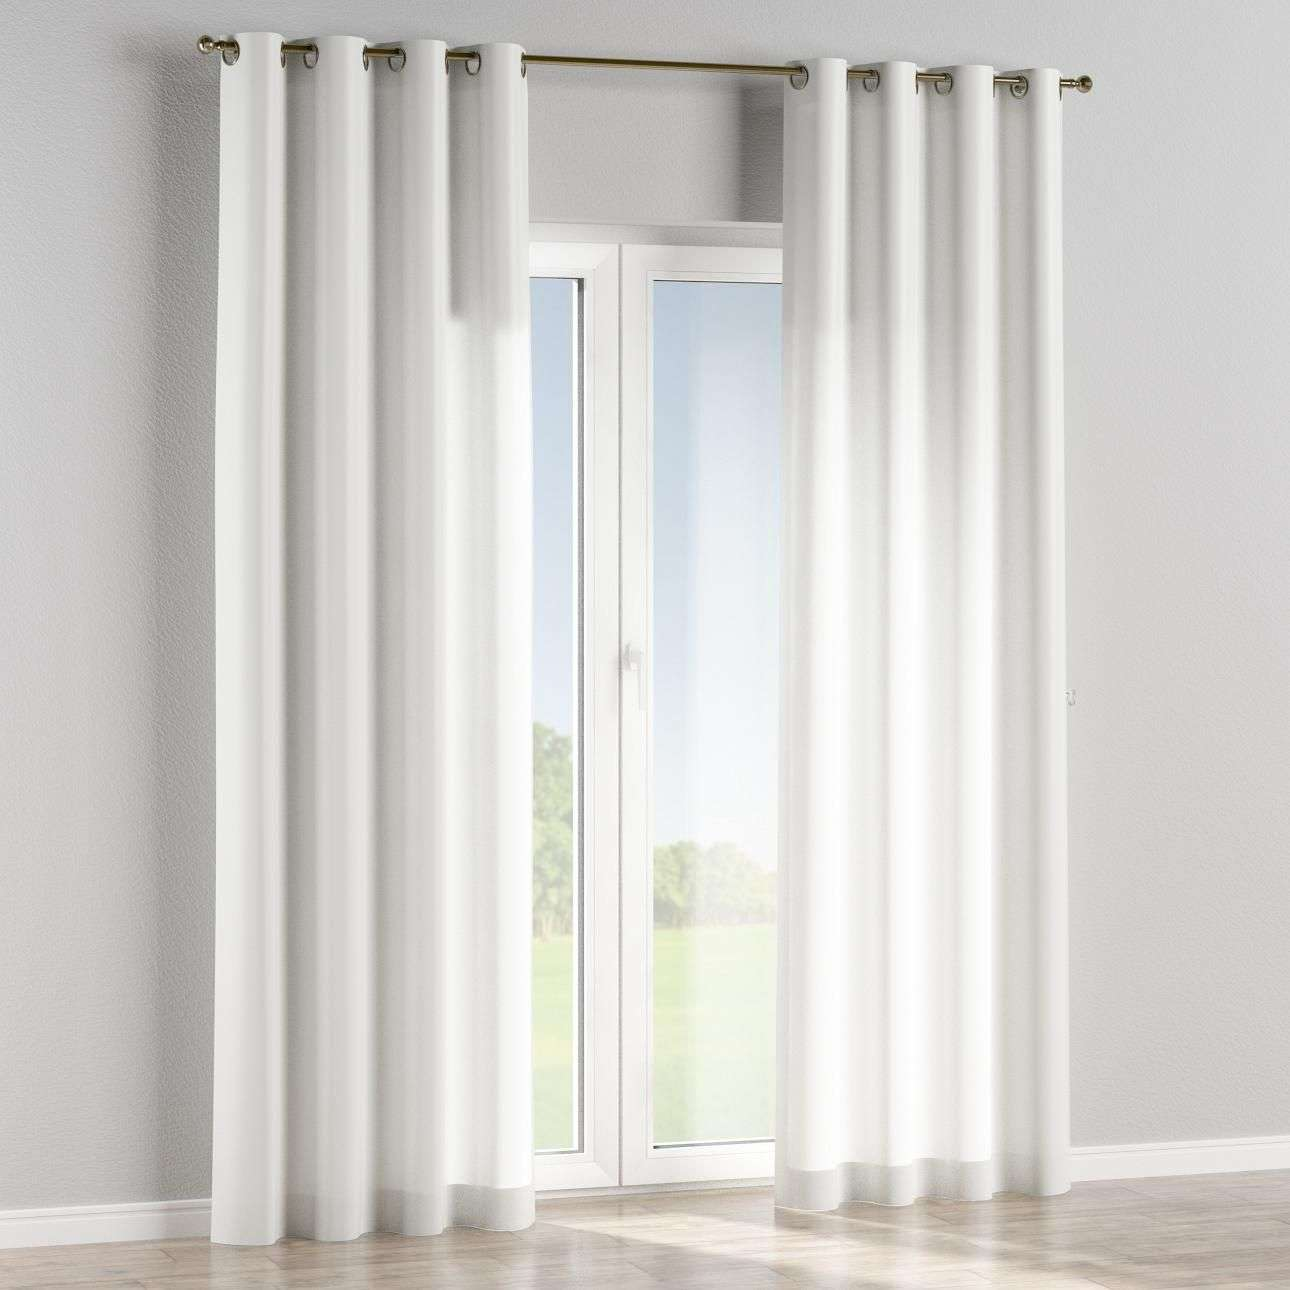 Eyelet curtains in collection Rustica, fabric: 138-25